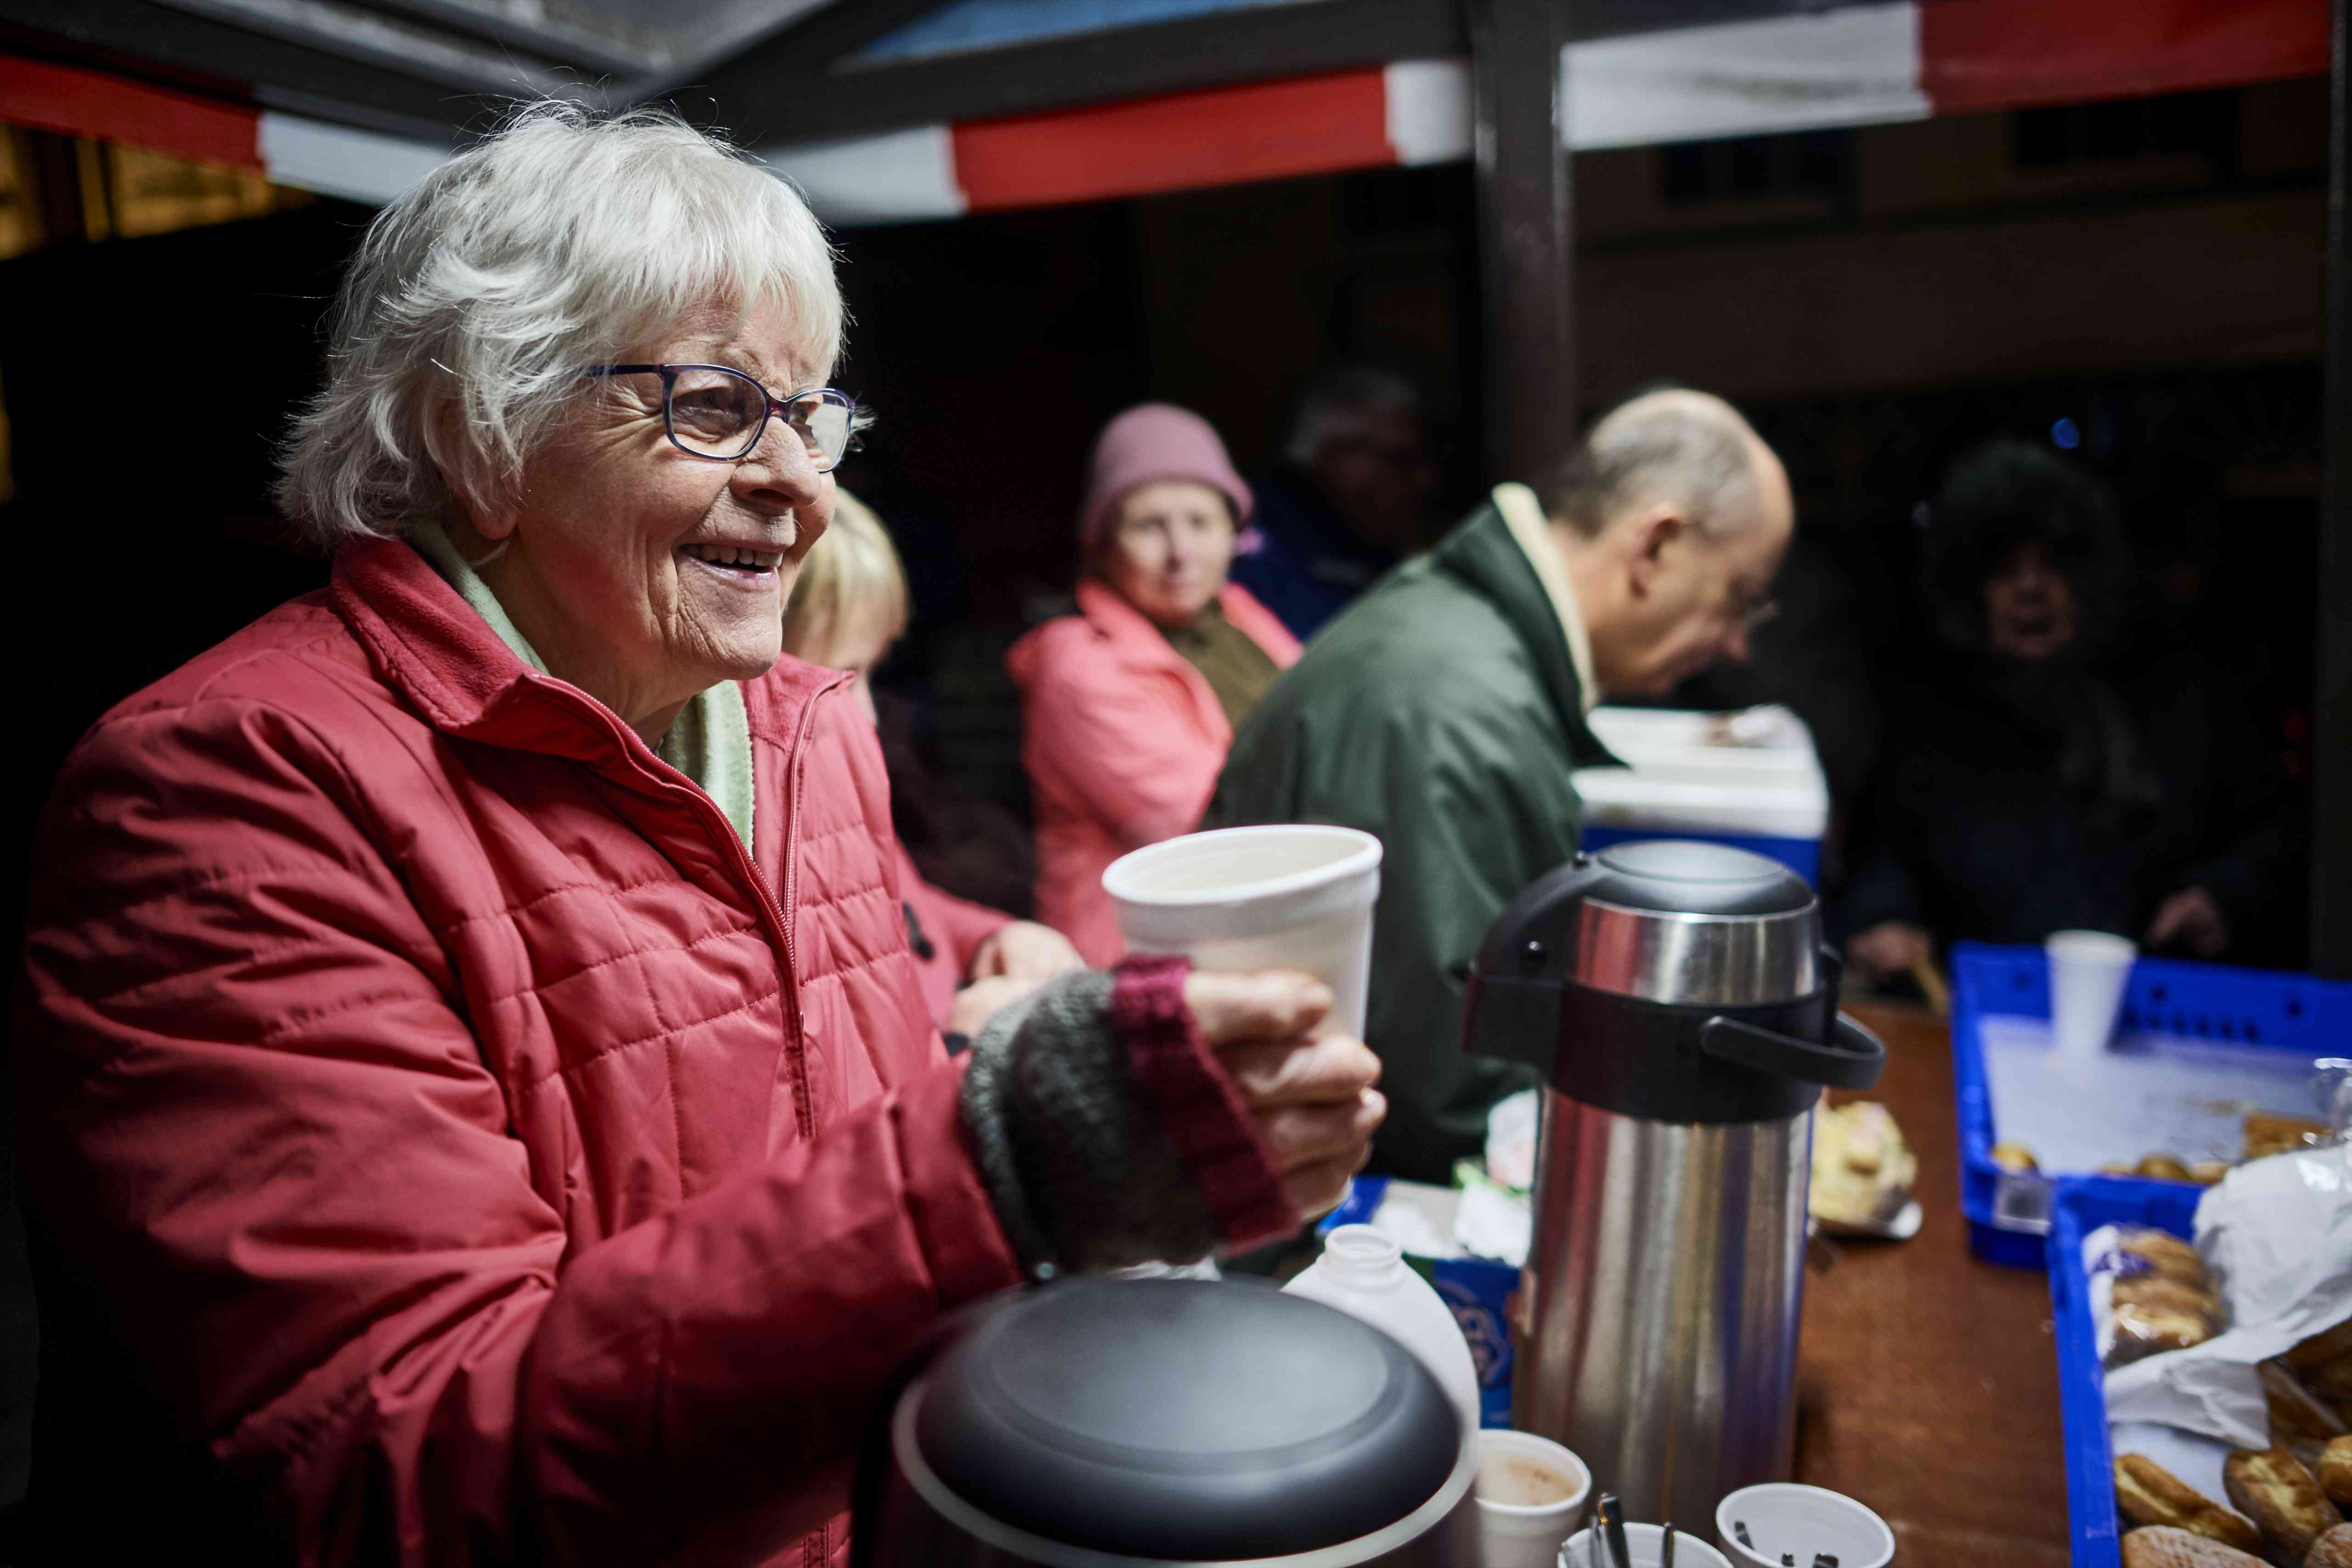 Volunteer serving a hot drink at local soup kitchen